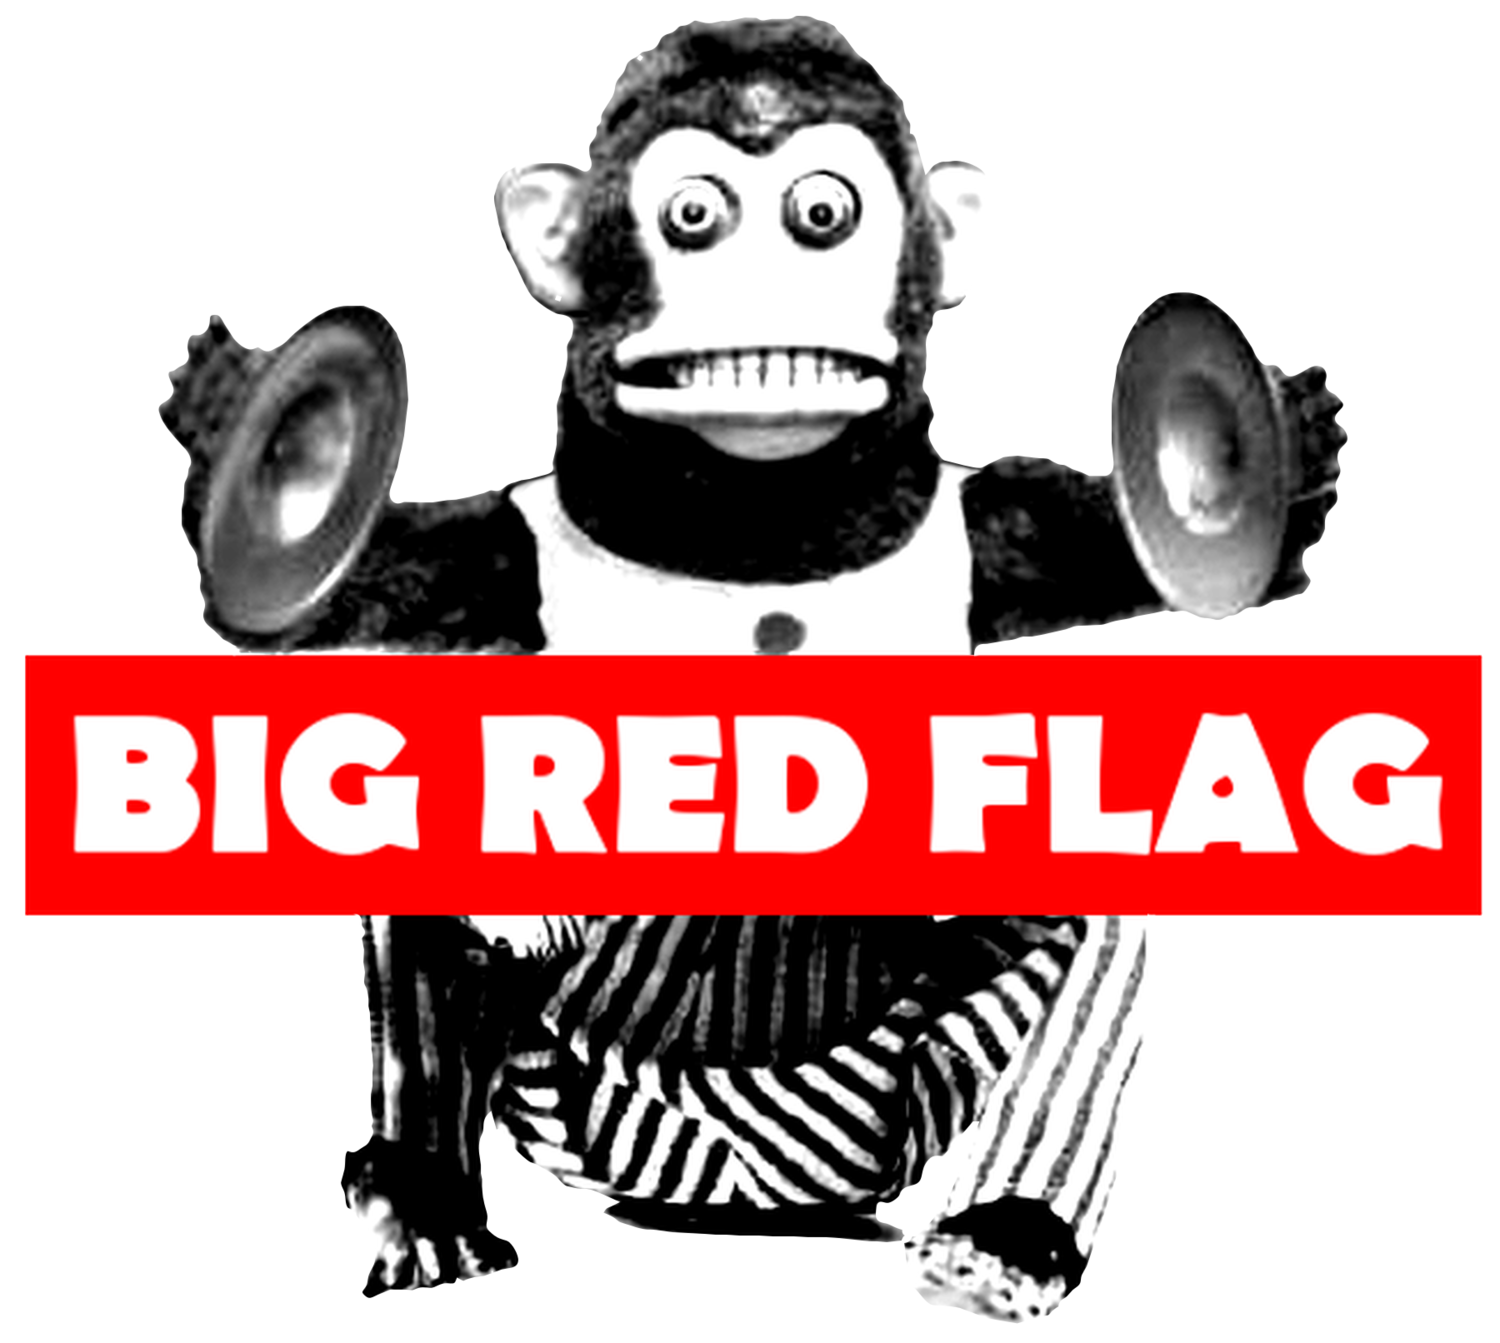 Big Red Flag